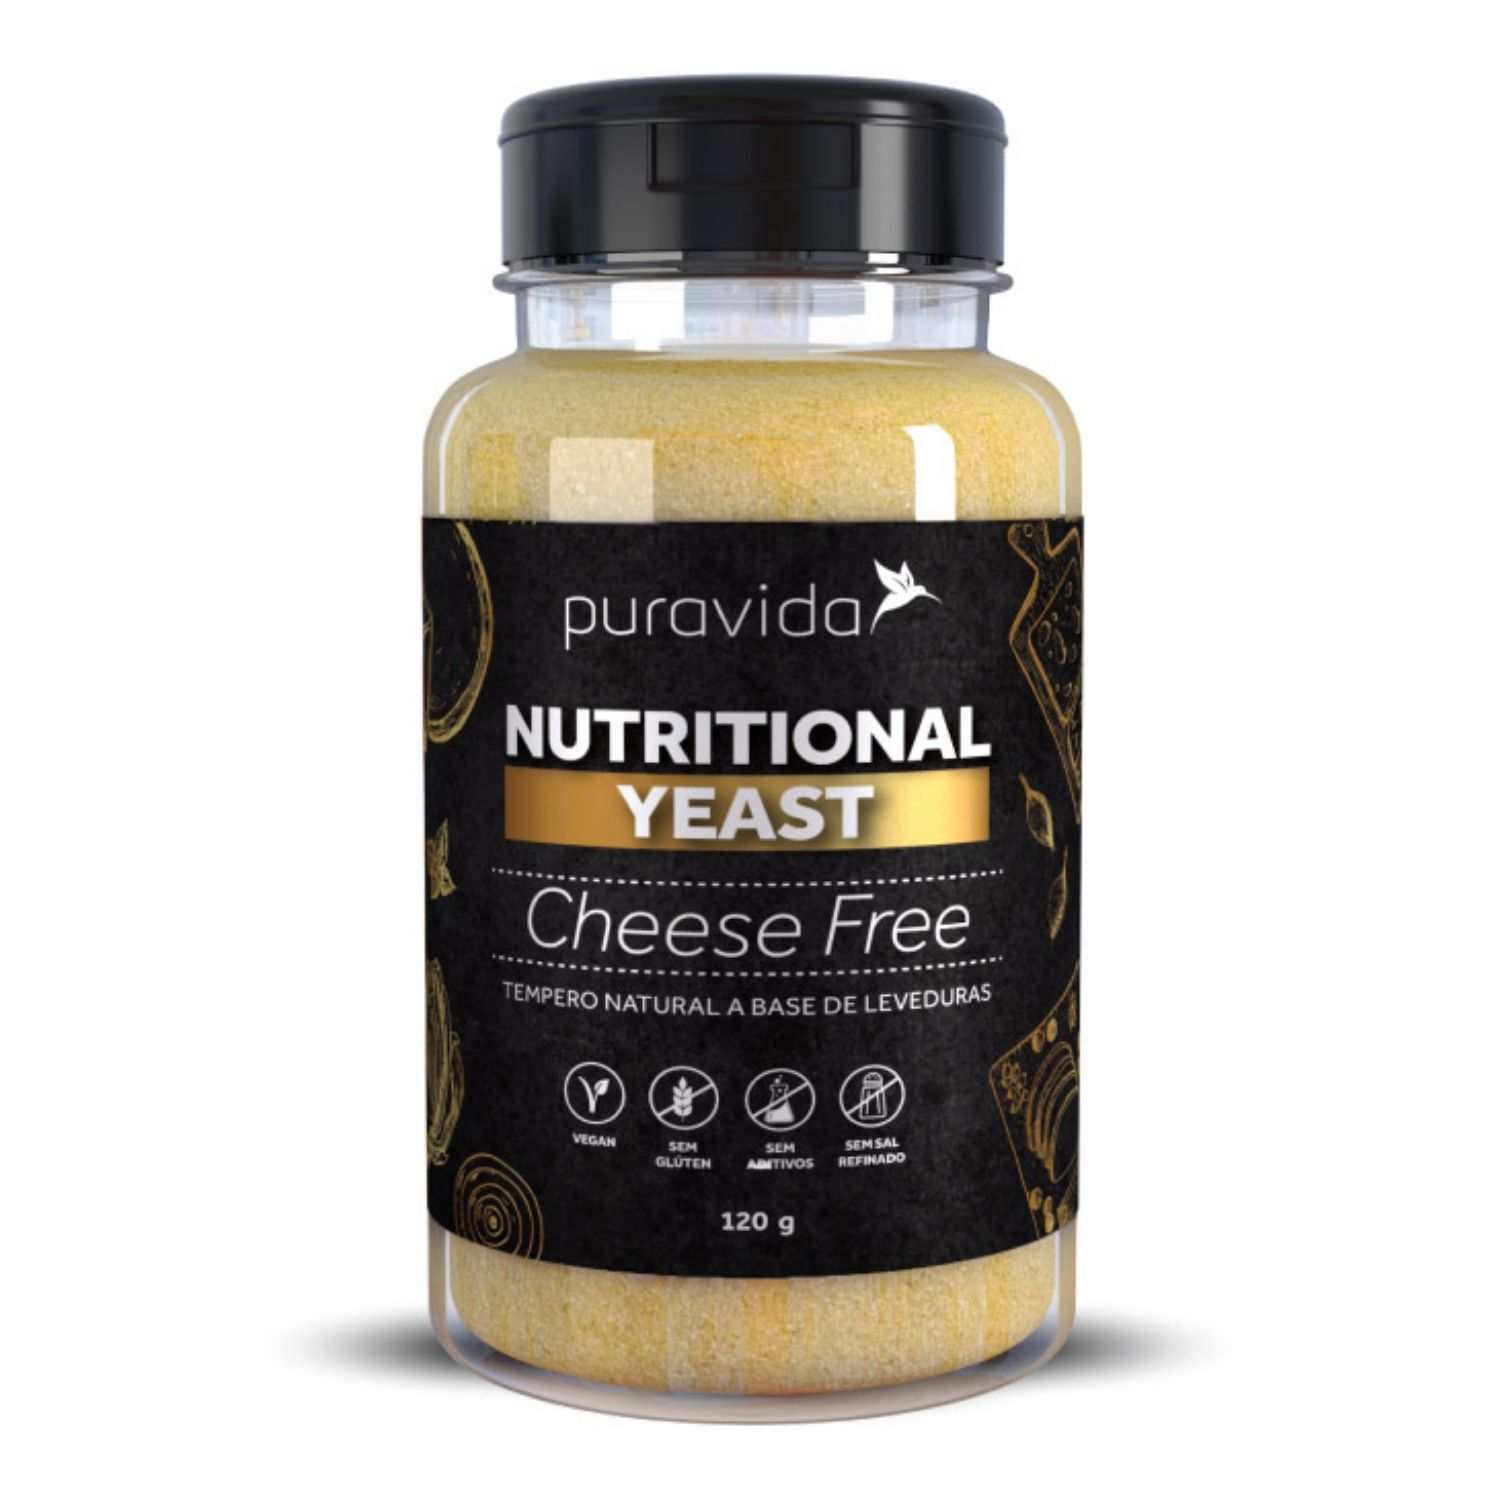 Nutritional Yeast Cheese Free 120g Puravida